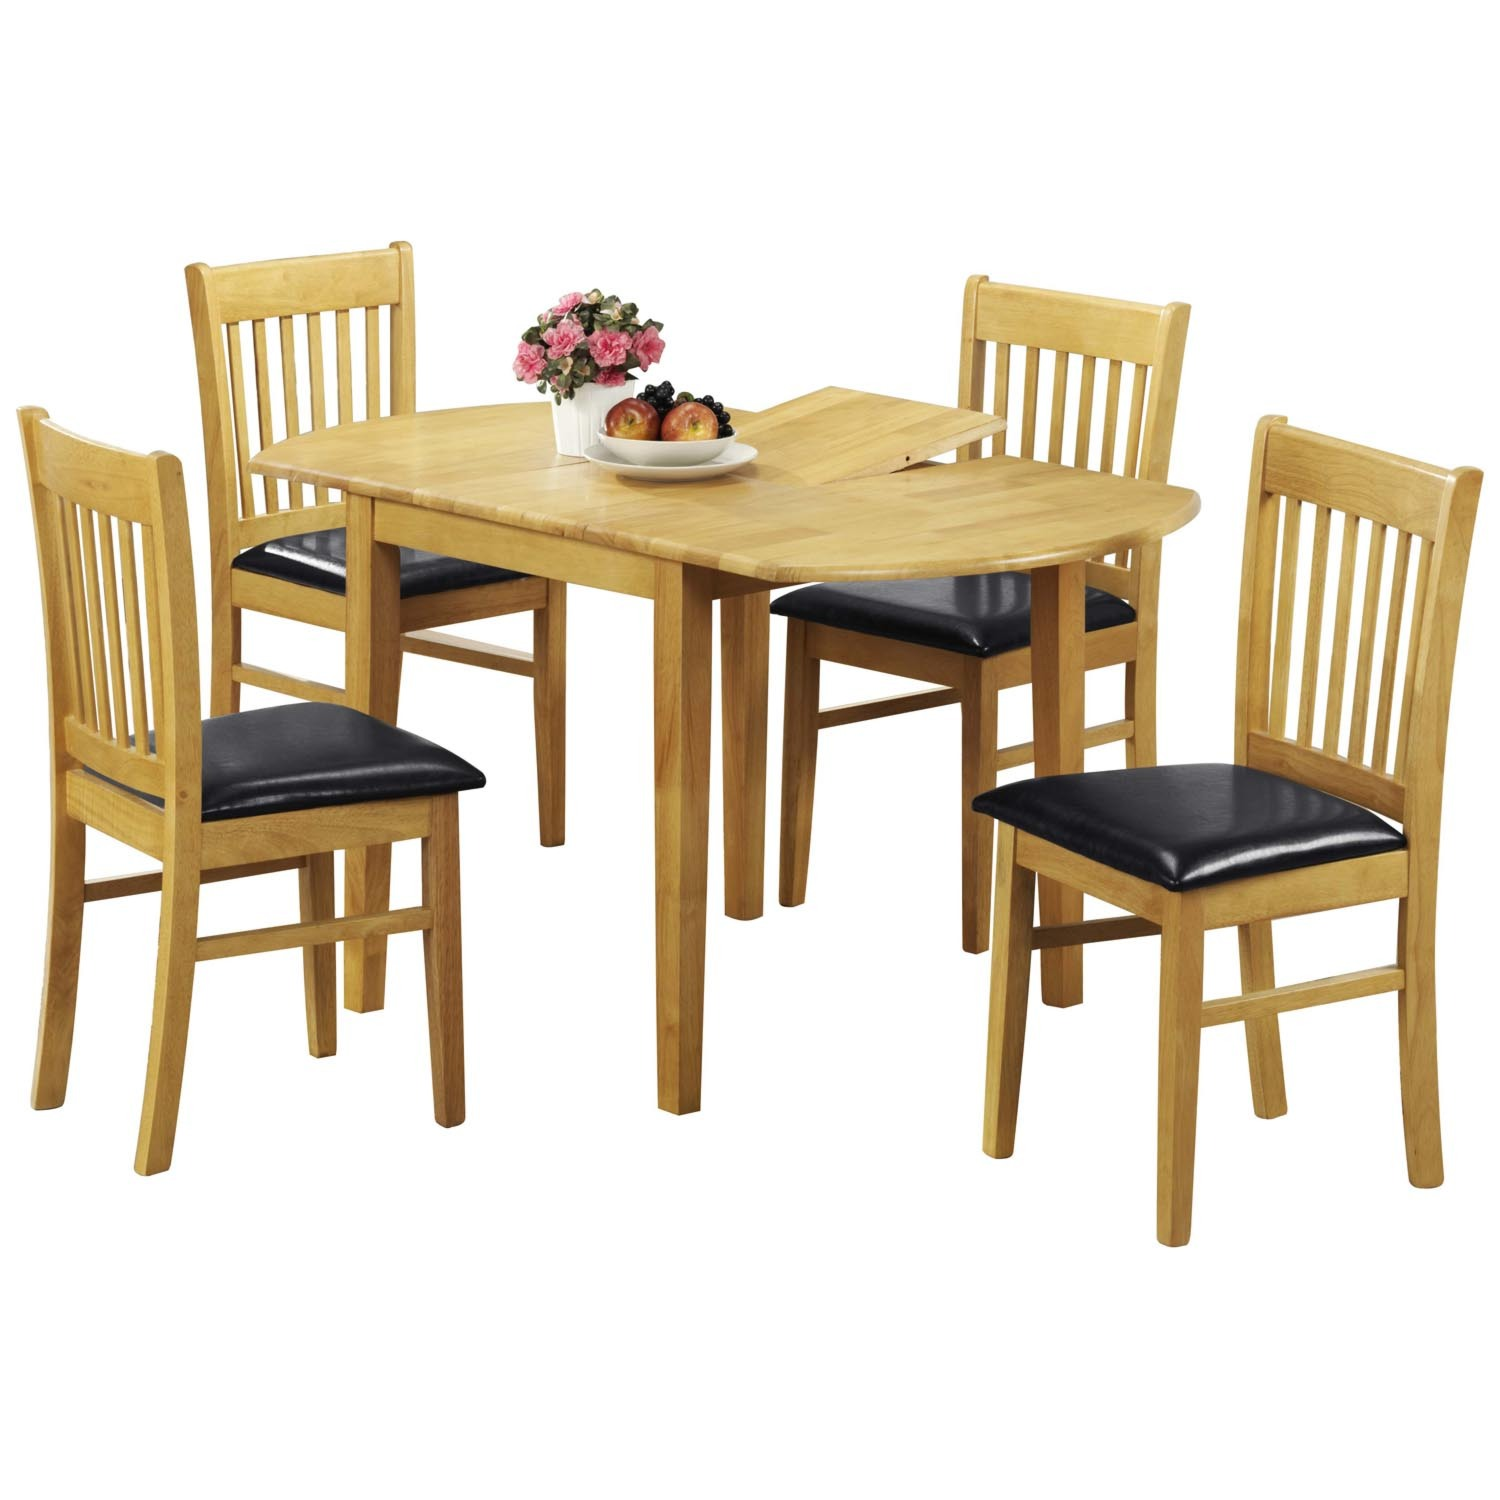 Dining Room Chairs Set Of 4 Sussex Dining Table And Four Chairs Set